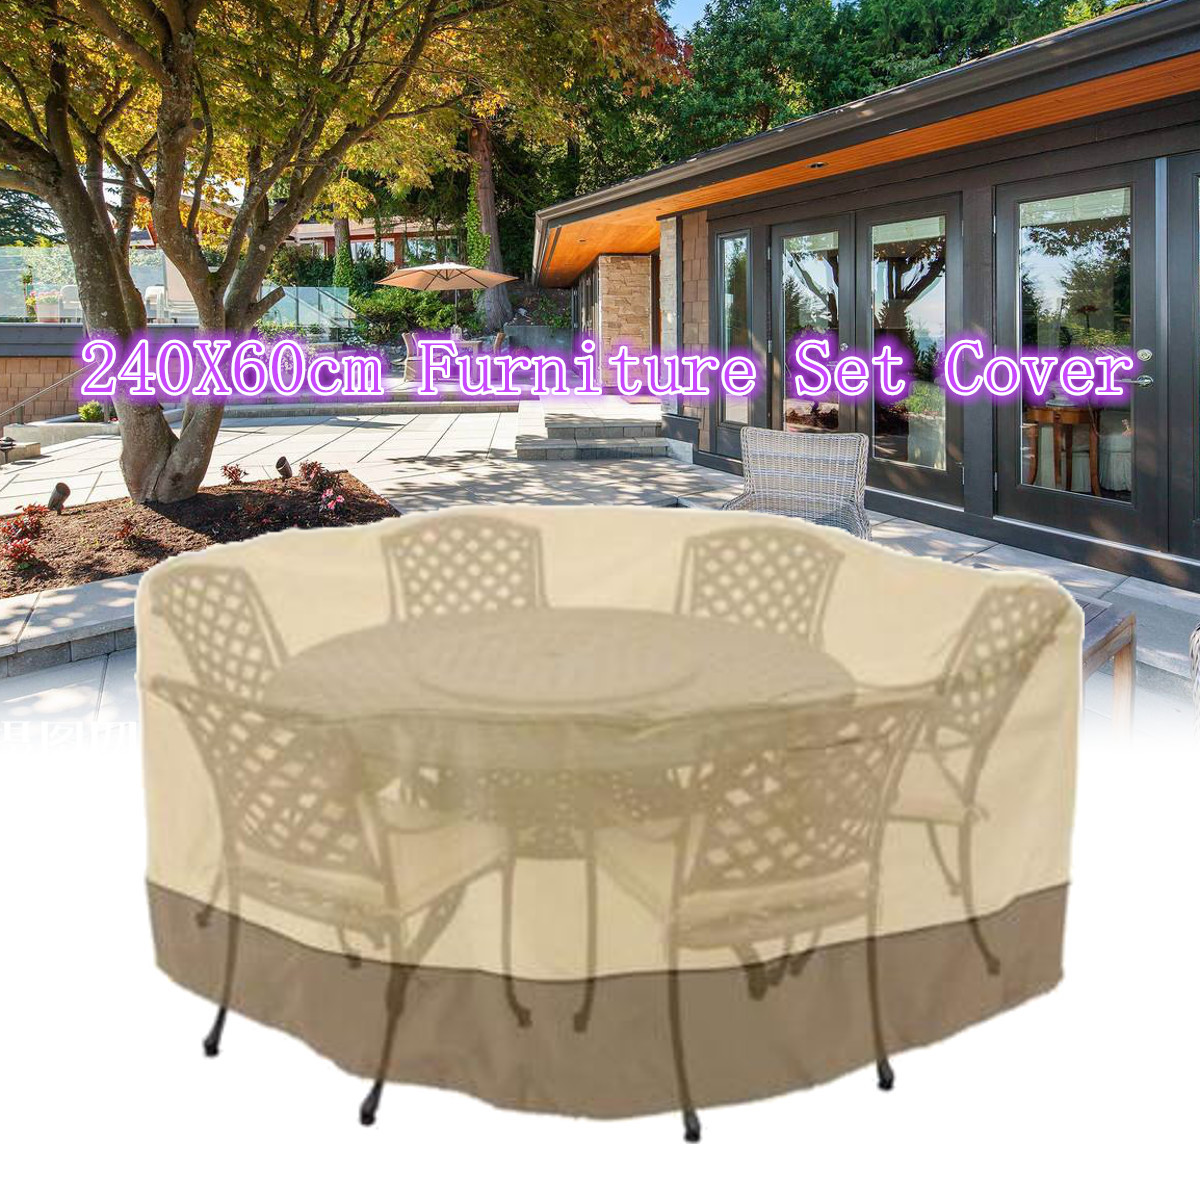 Round Table Patio Furniture Sets Us 61 25 Waterproof Garden Table Cover Tablecloth 240x60cm Round Outdoor Patio Furniture Set Shelter Protective Cover Accessories Beige In